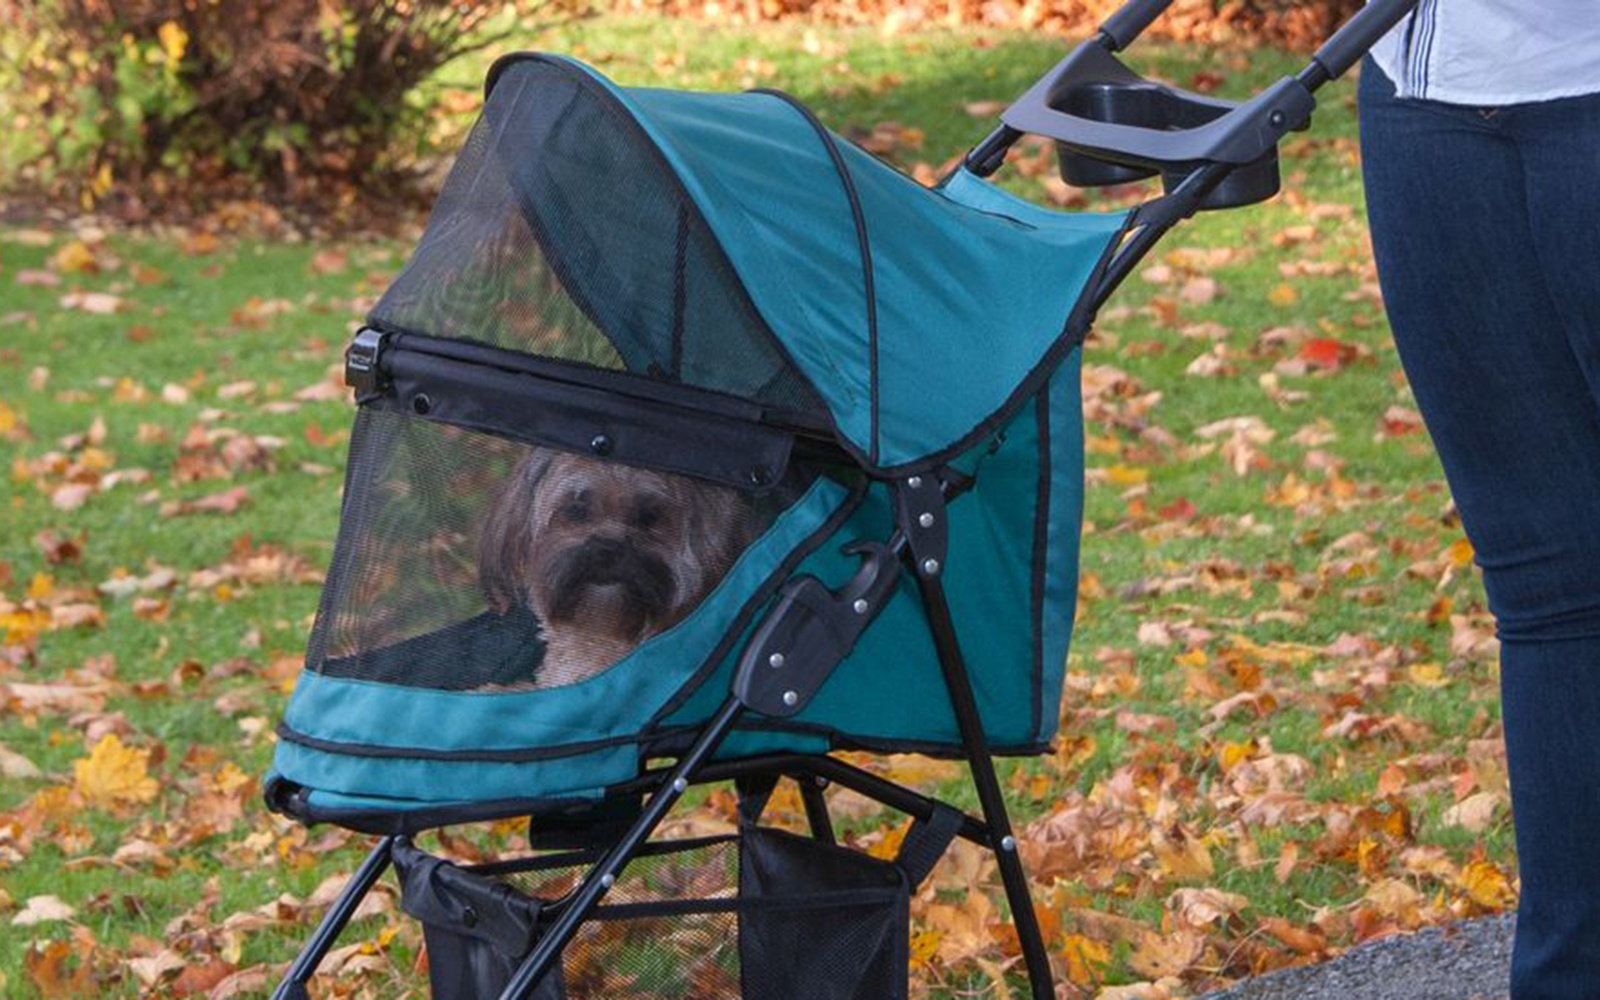 Pet Gear's Happy Trails Stroller